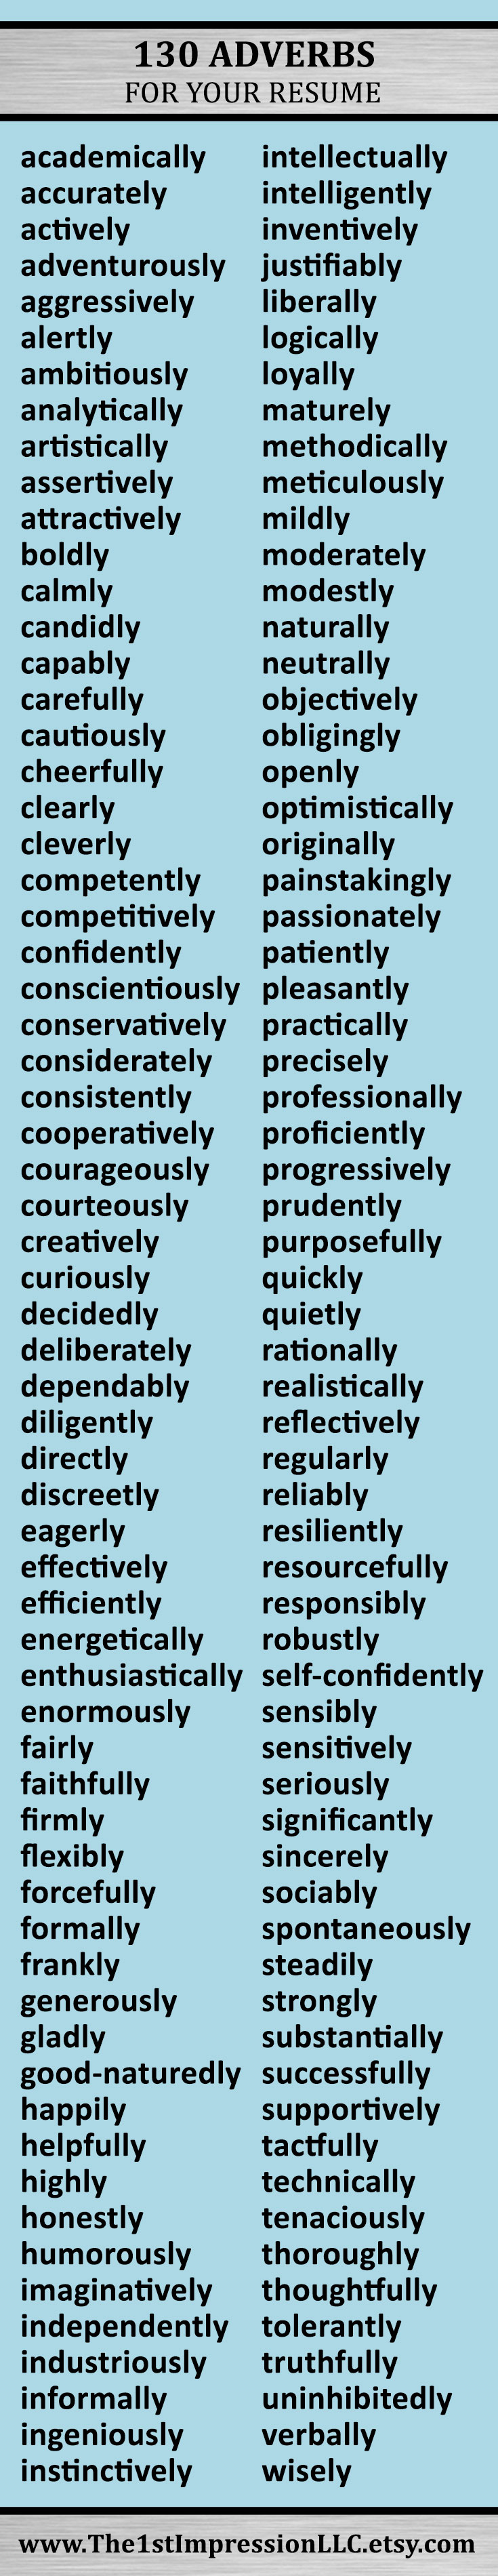 Huge List Of 130 Adverbs To Help You Write Your Resume